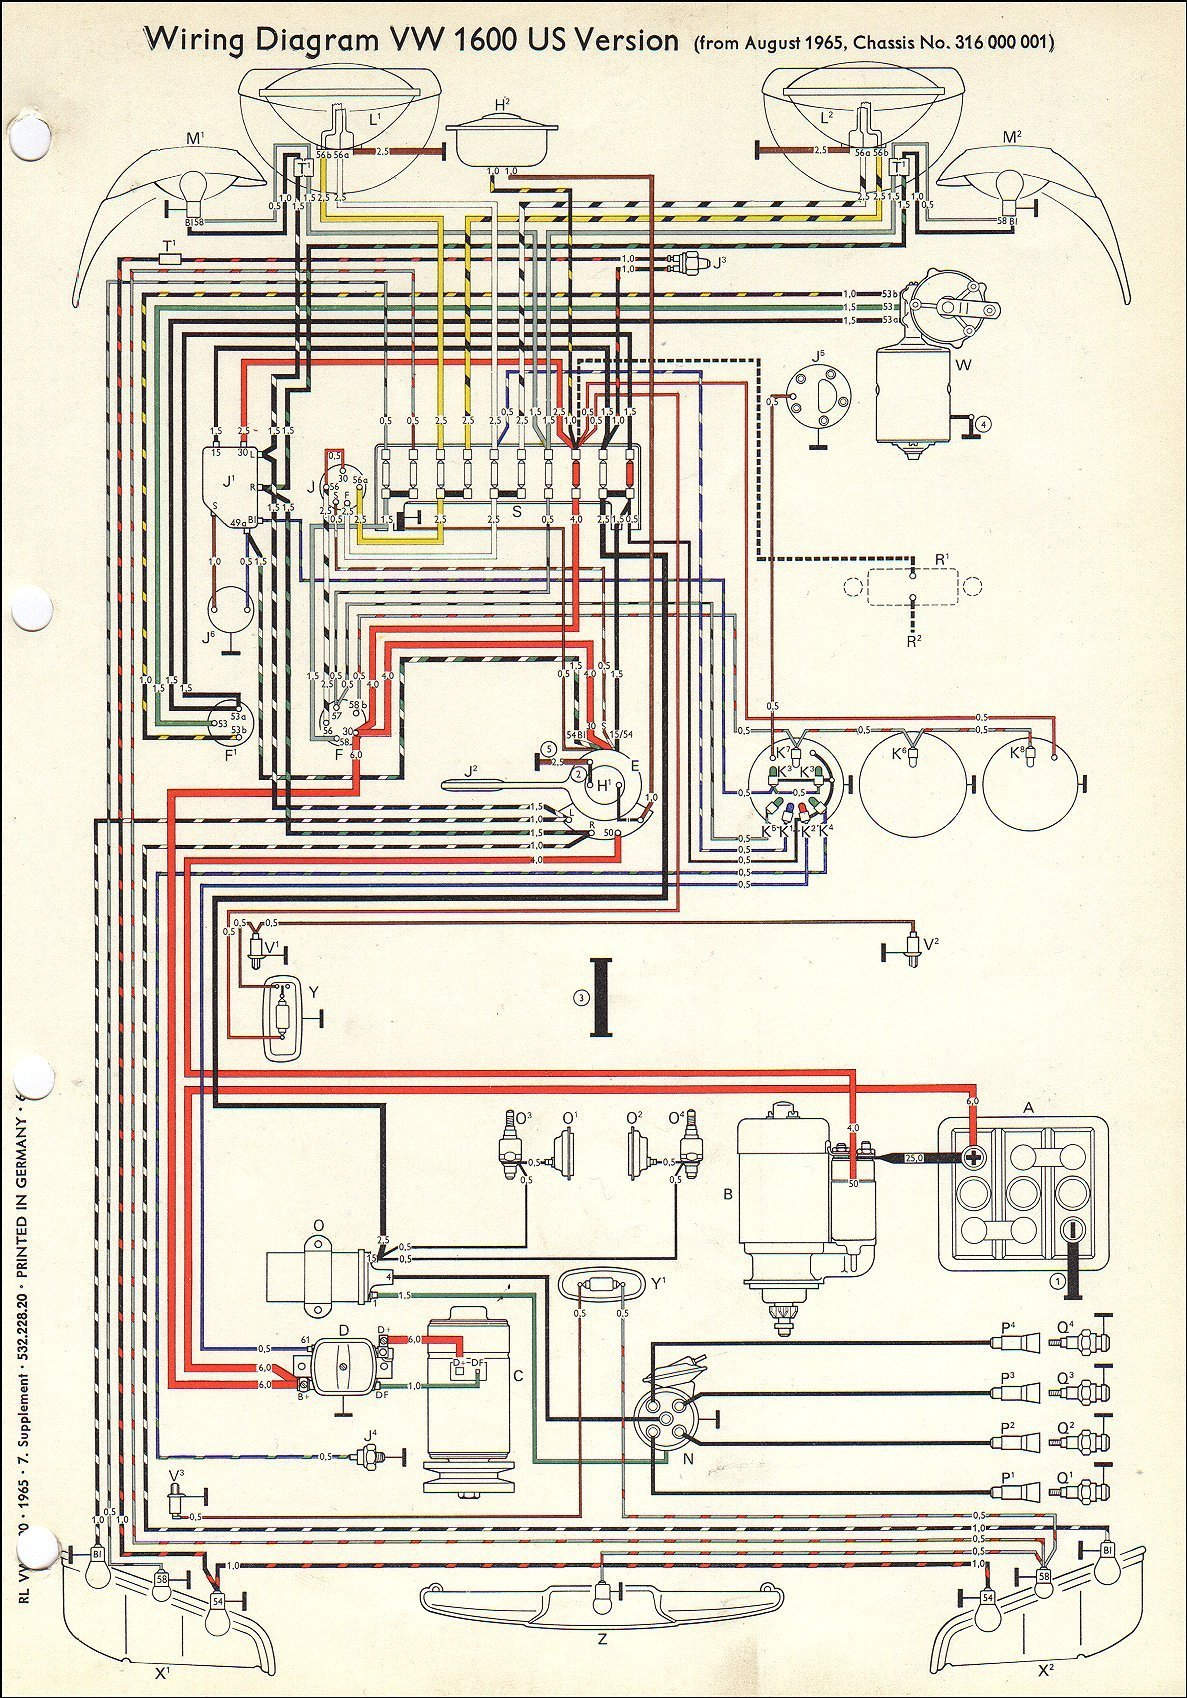 Wiring Diagram For 1960 Vw Beetle : Vw short bus a like no other